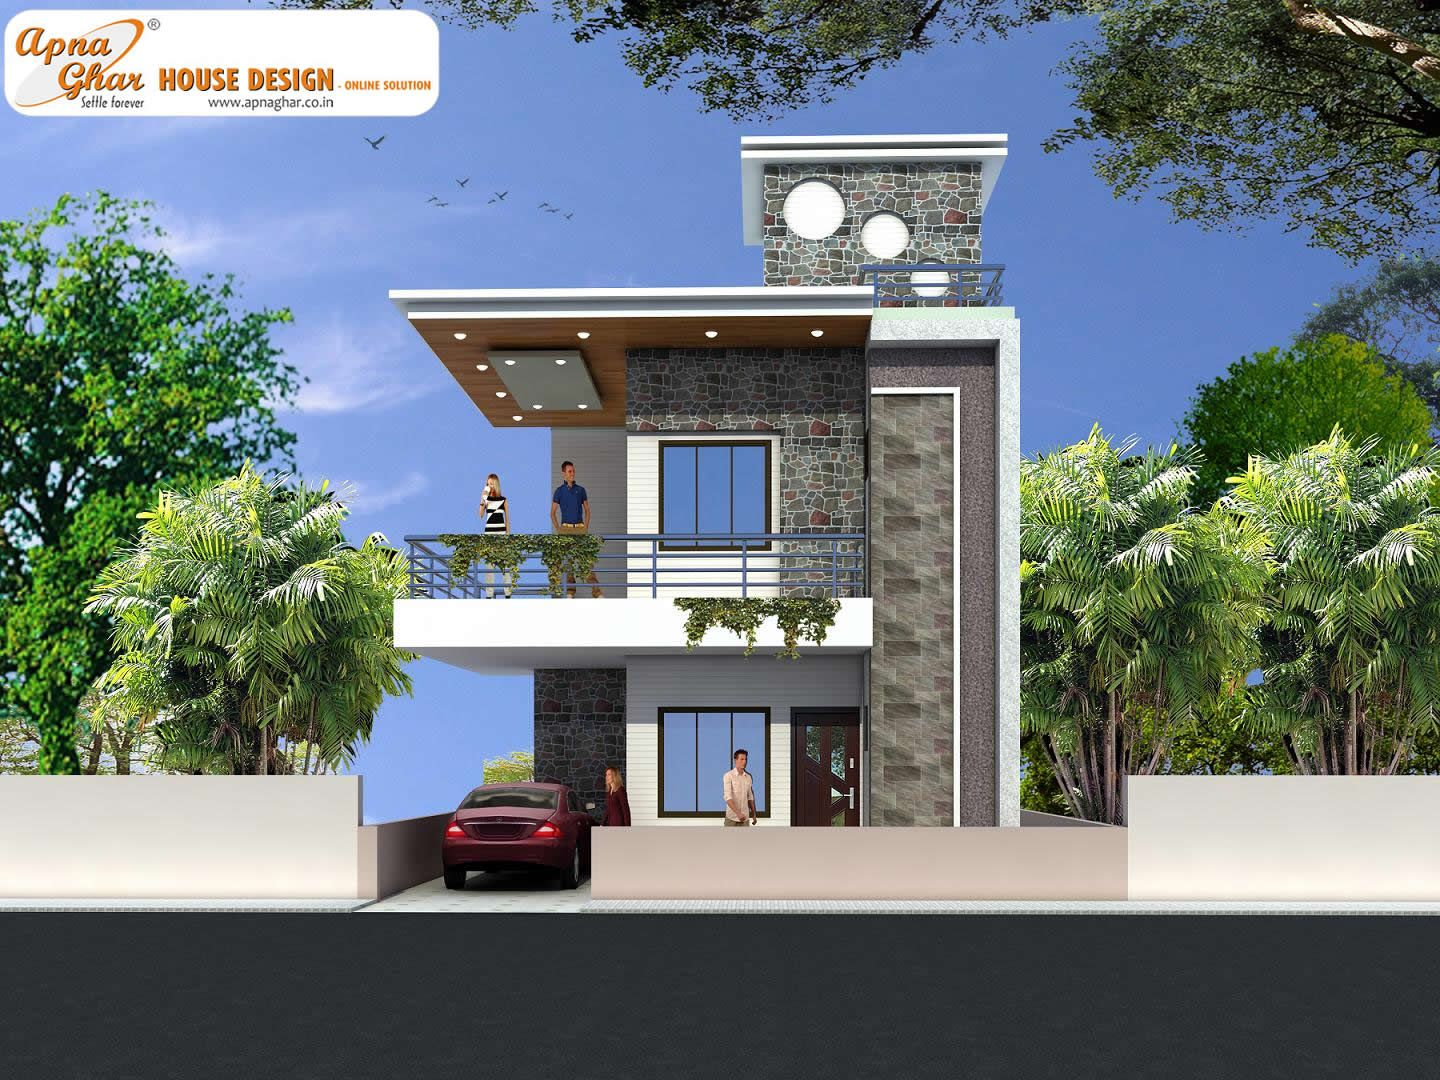 Modern duplex house design in 126m2 9m x 14m like share for Contemporary duplex plans